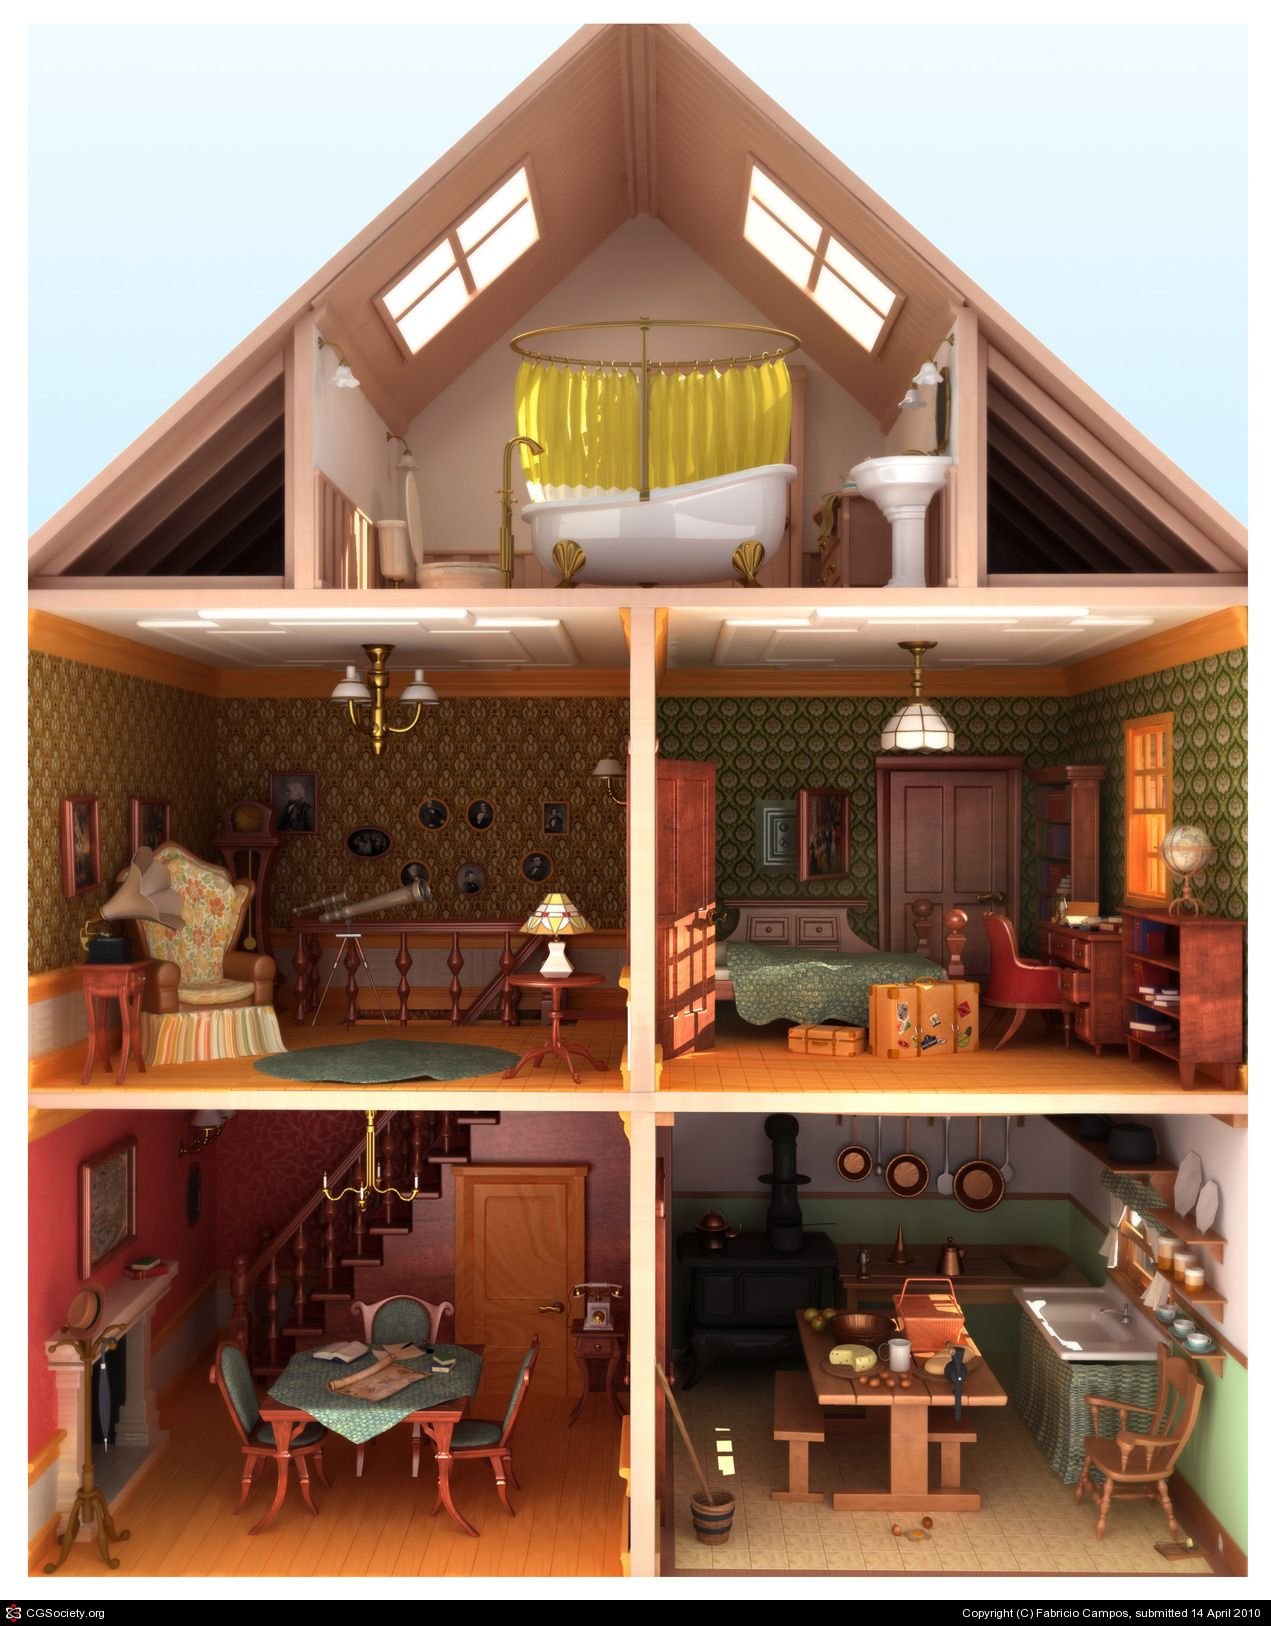 Doll House By Fabricio Campos - 3D - Cgsociety